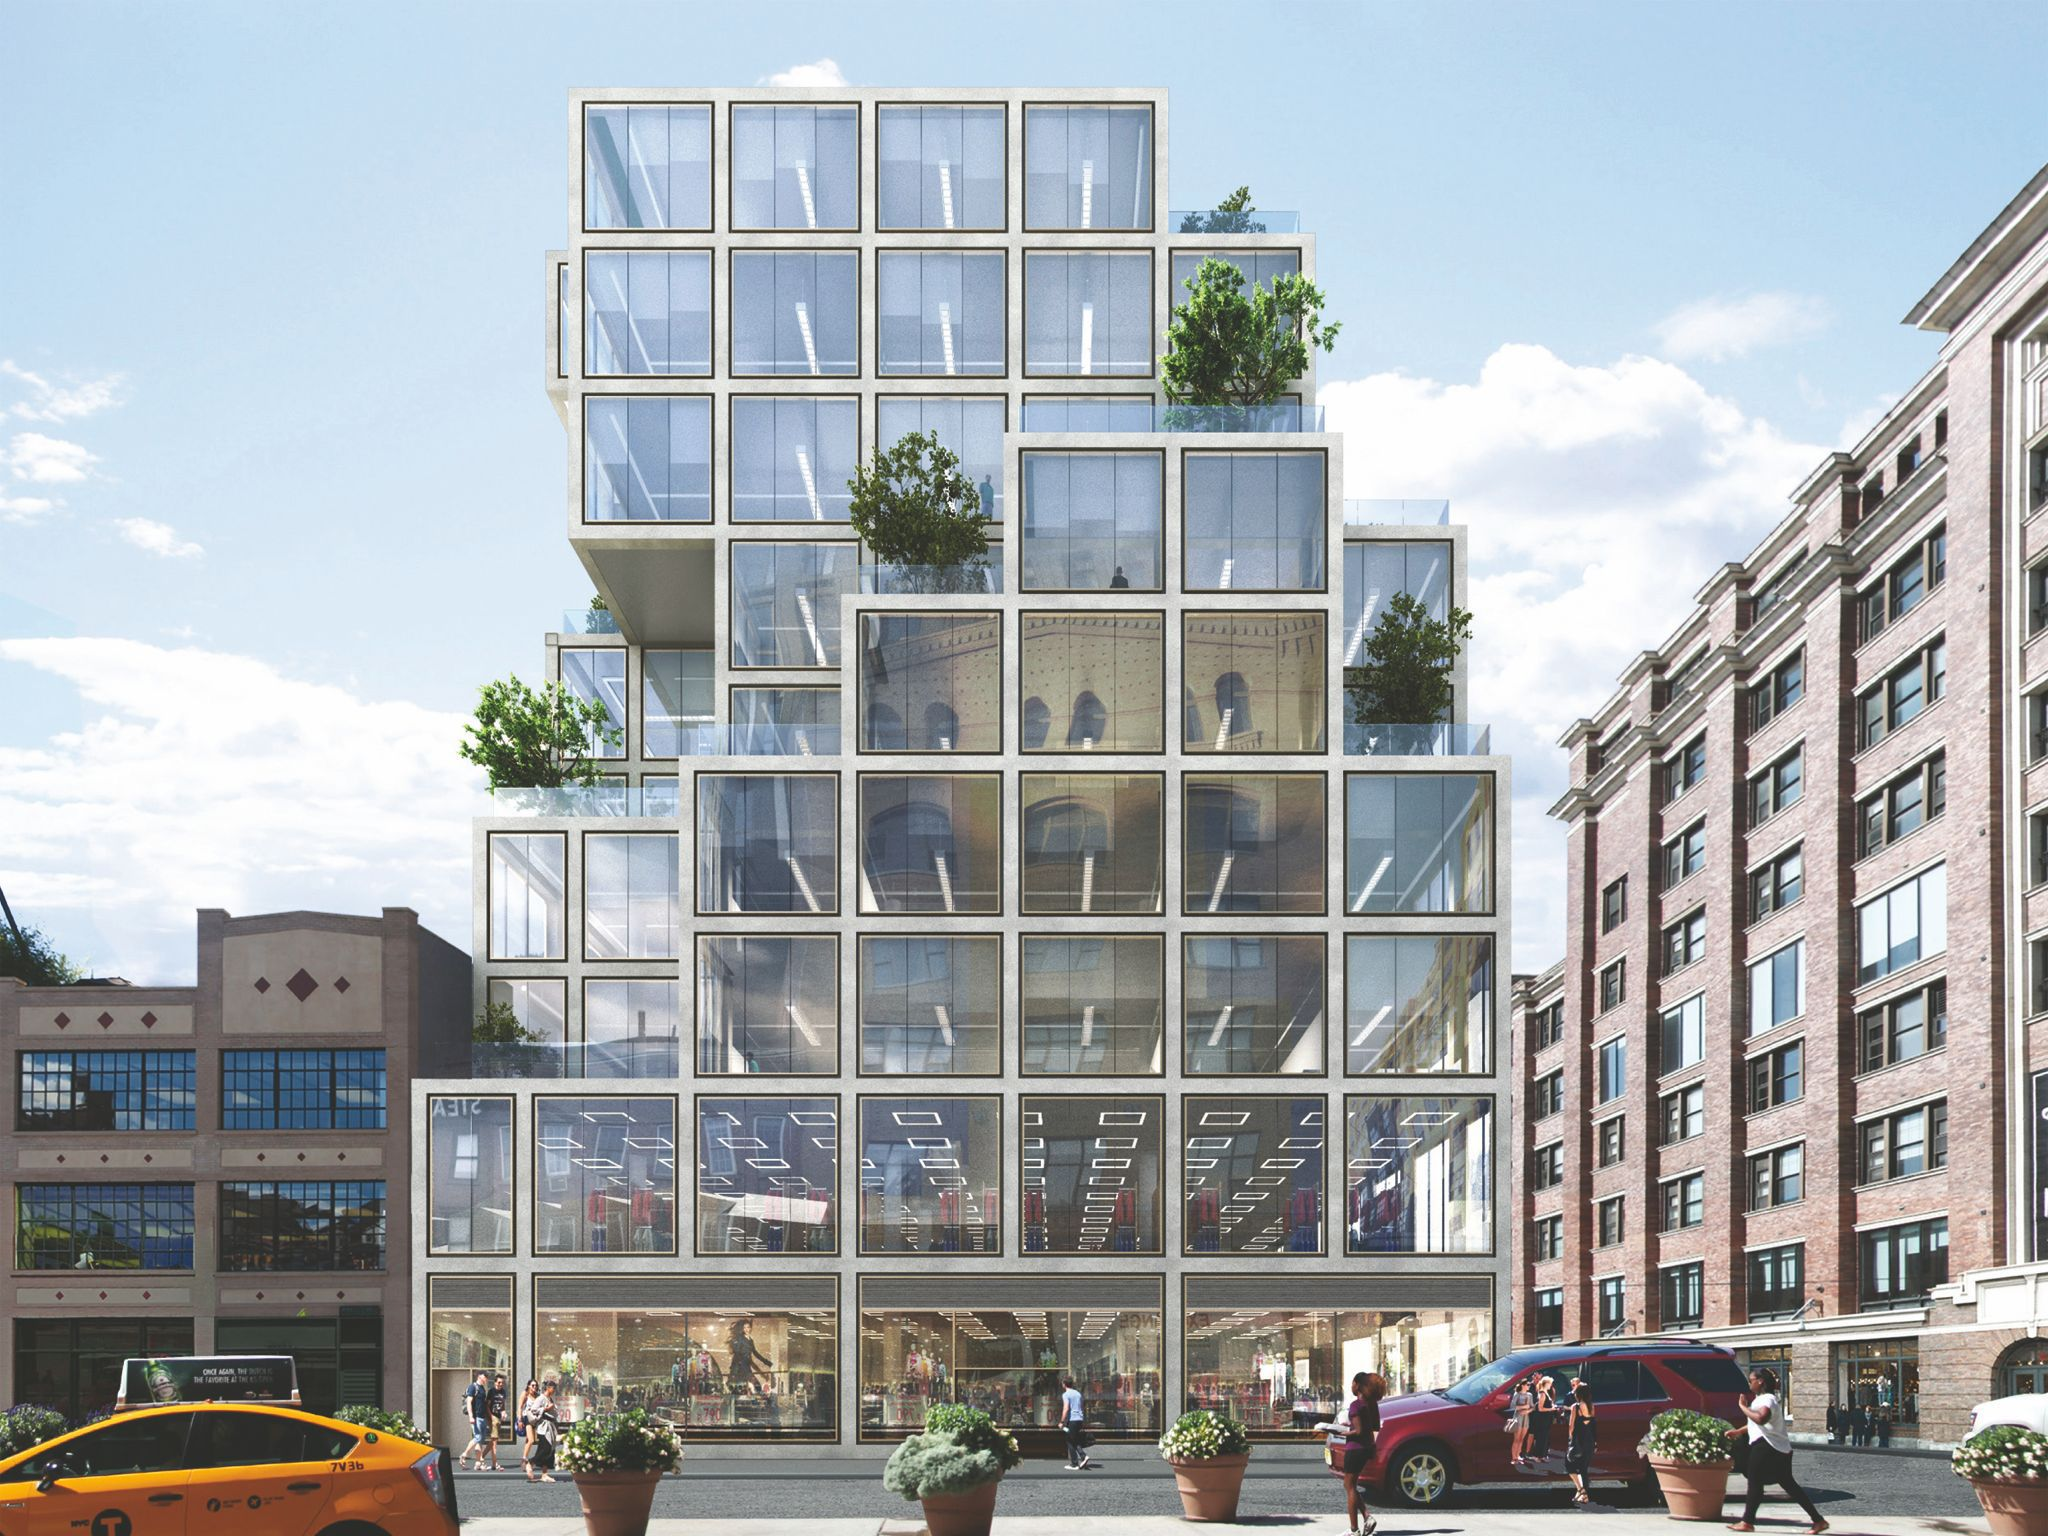 New York homes, neighborhoods, architecture, and real